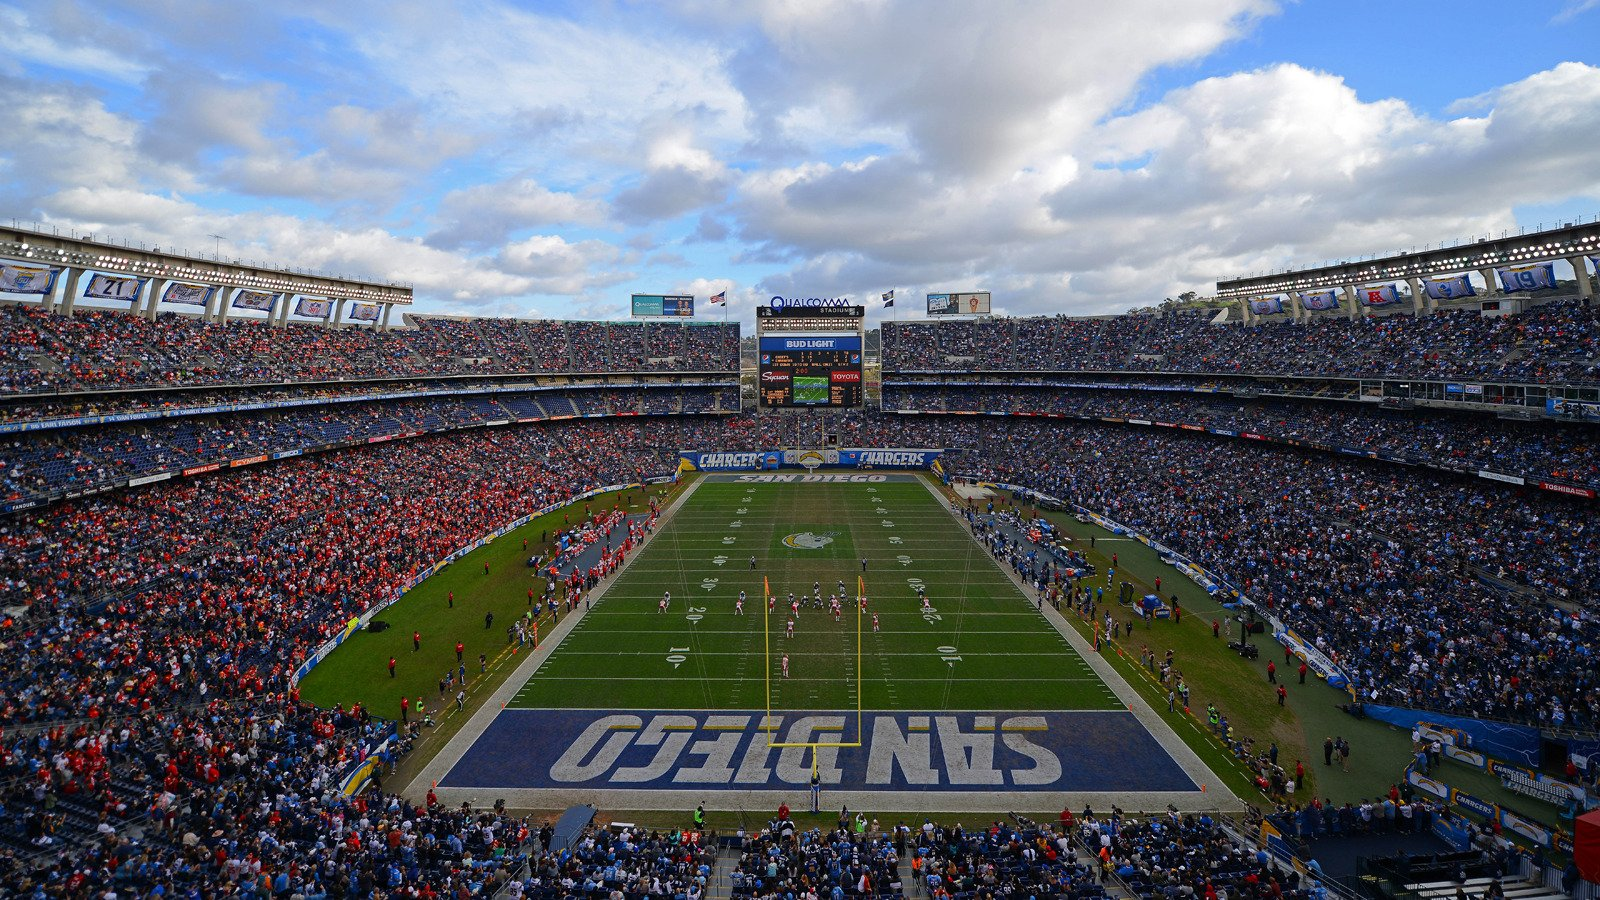 Reports: #SanDiegoChargers to announce move to Los Angeles as early as Thursday. #NFL https://t.co/aMTHcjtcuV https://t.co/MUpPkvVtAC